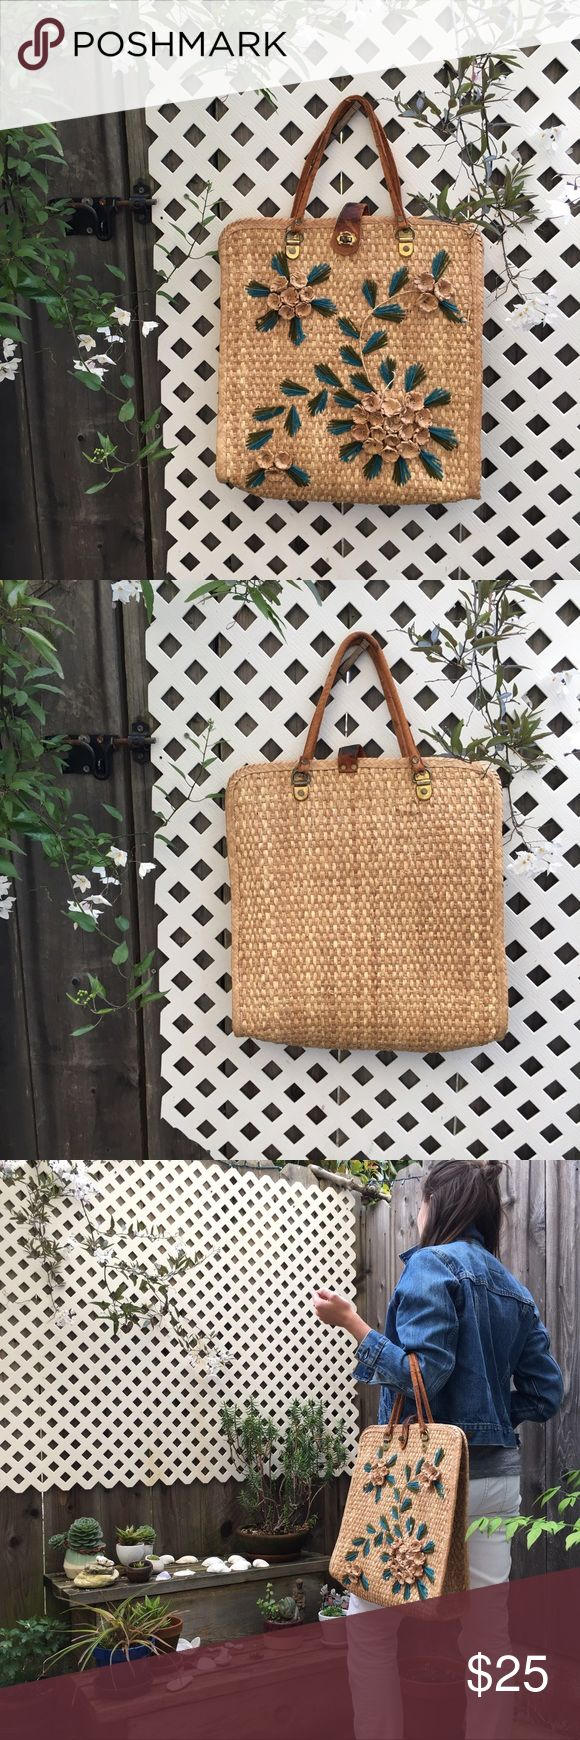 """Floral Straw Summer Tote Super cute summer straw tote. 3D woven straw flowers with blue & green """"leaves"""". Leather handles & closure are weathered & fraying, but it's gives it true vintage charm! Bought at a San Francisco vintage shop. Perfect for a summer picnic! Vintage Bags"""